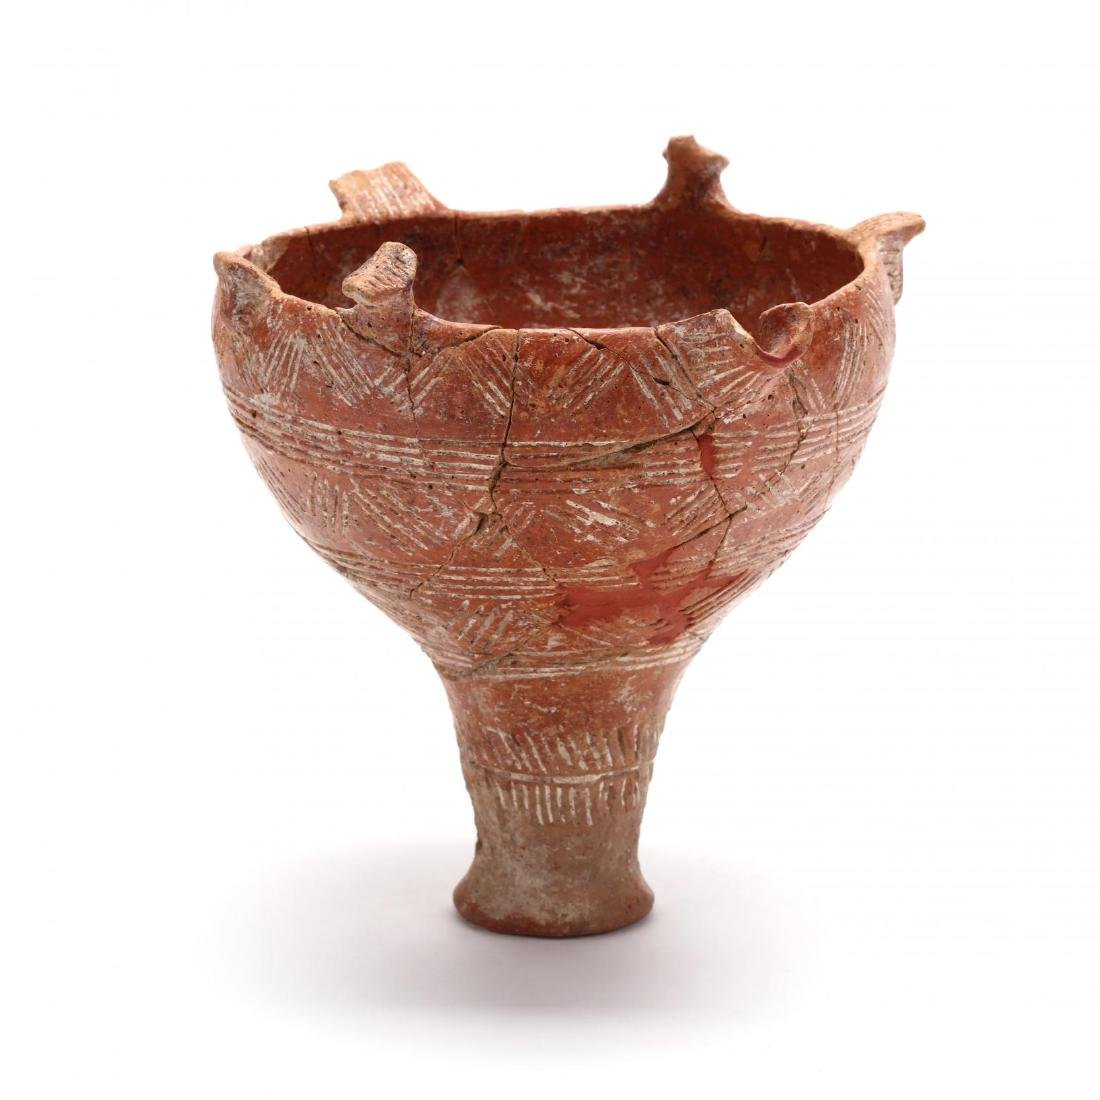 Cypriot Early Bronze Age Polished Red Ware Bowl